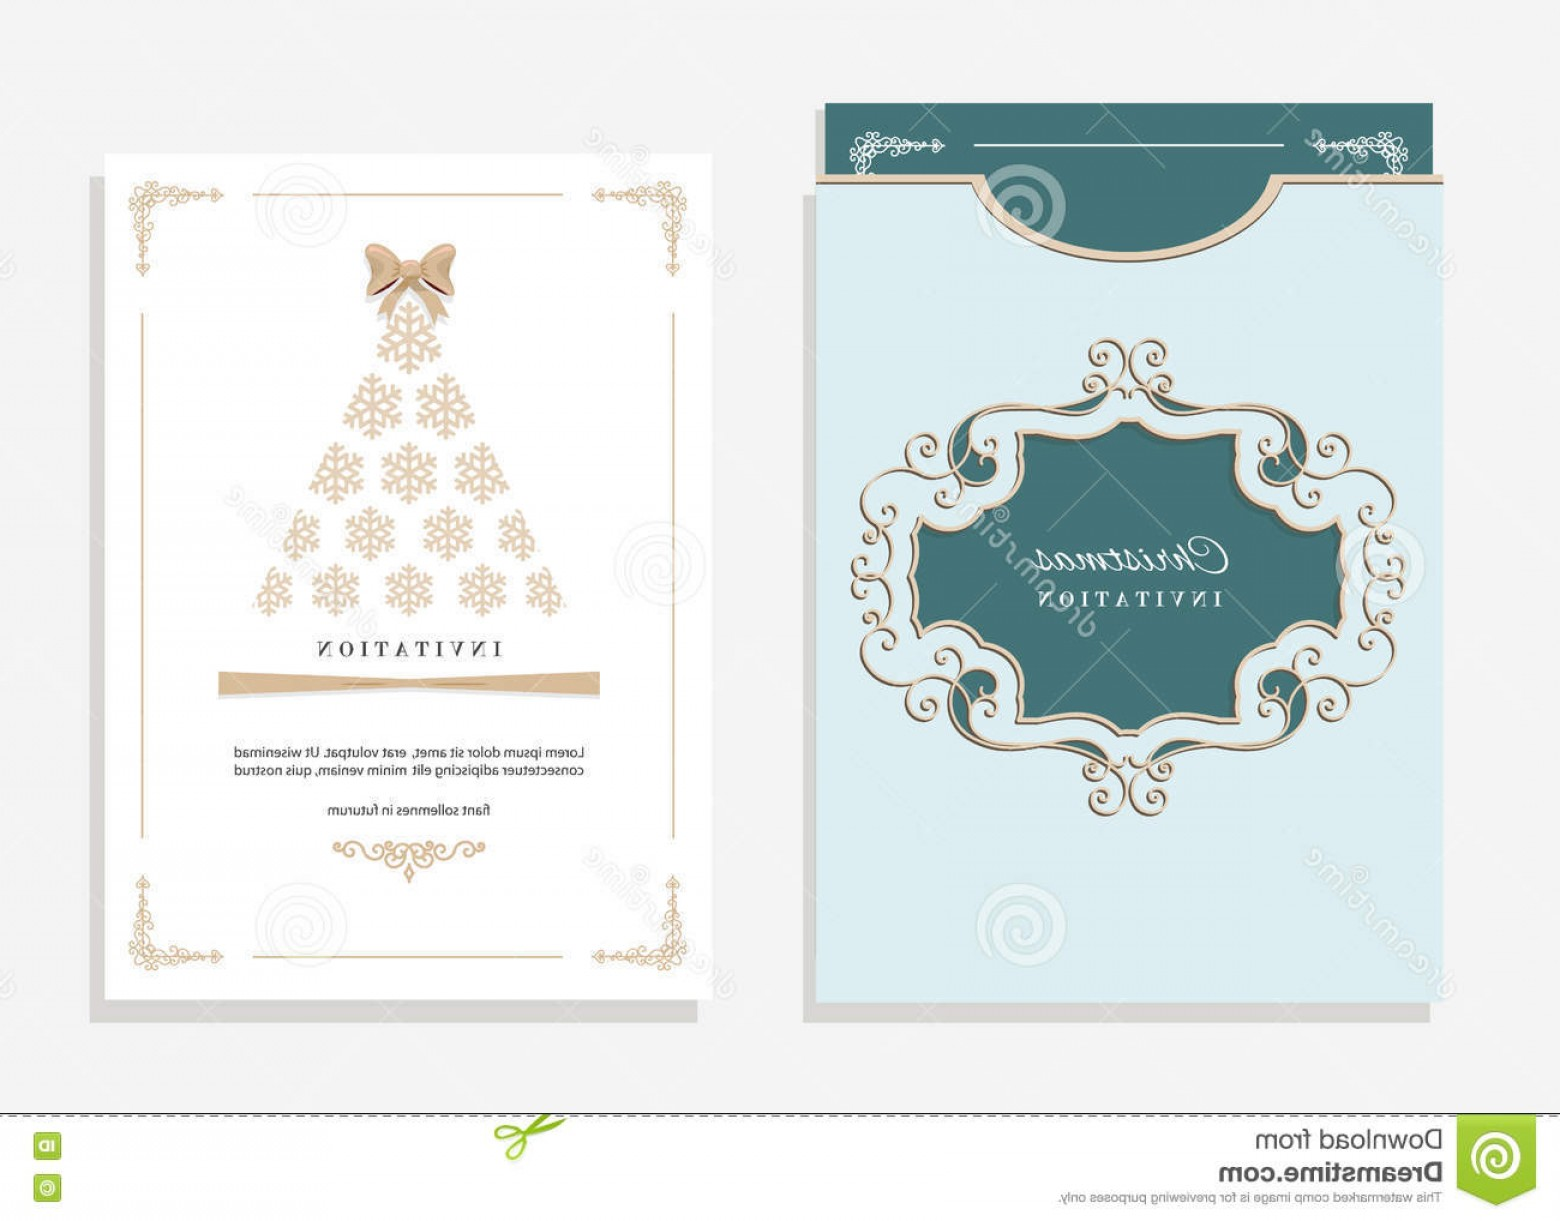 Filigree Oval Frame Vector: Stock Illustration Christmas Template Laser Cutting Party Invitation Envelope Filigree Oval Frame Emerald White Colors Image